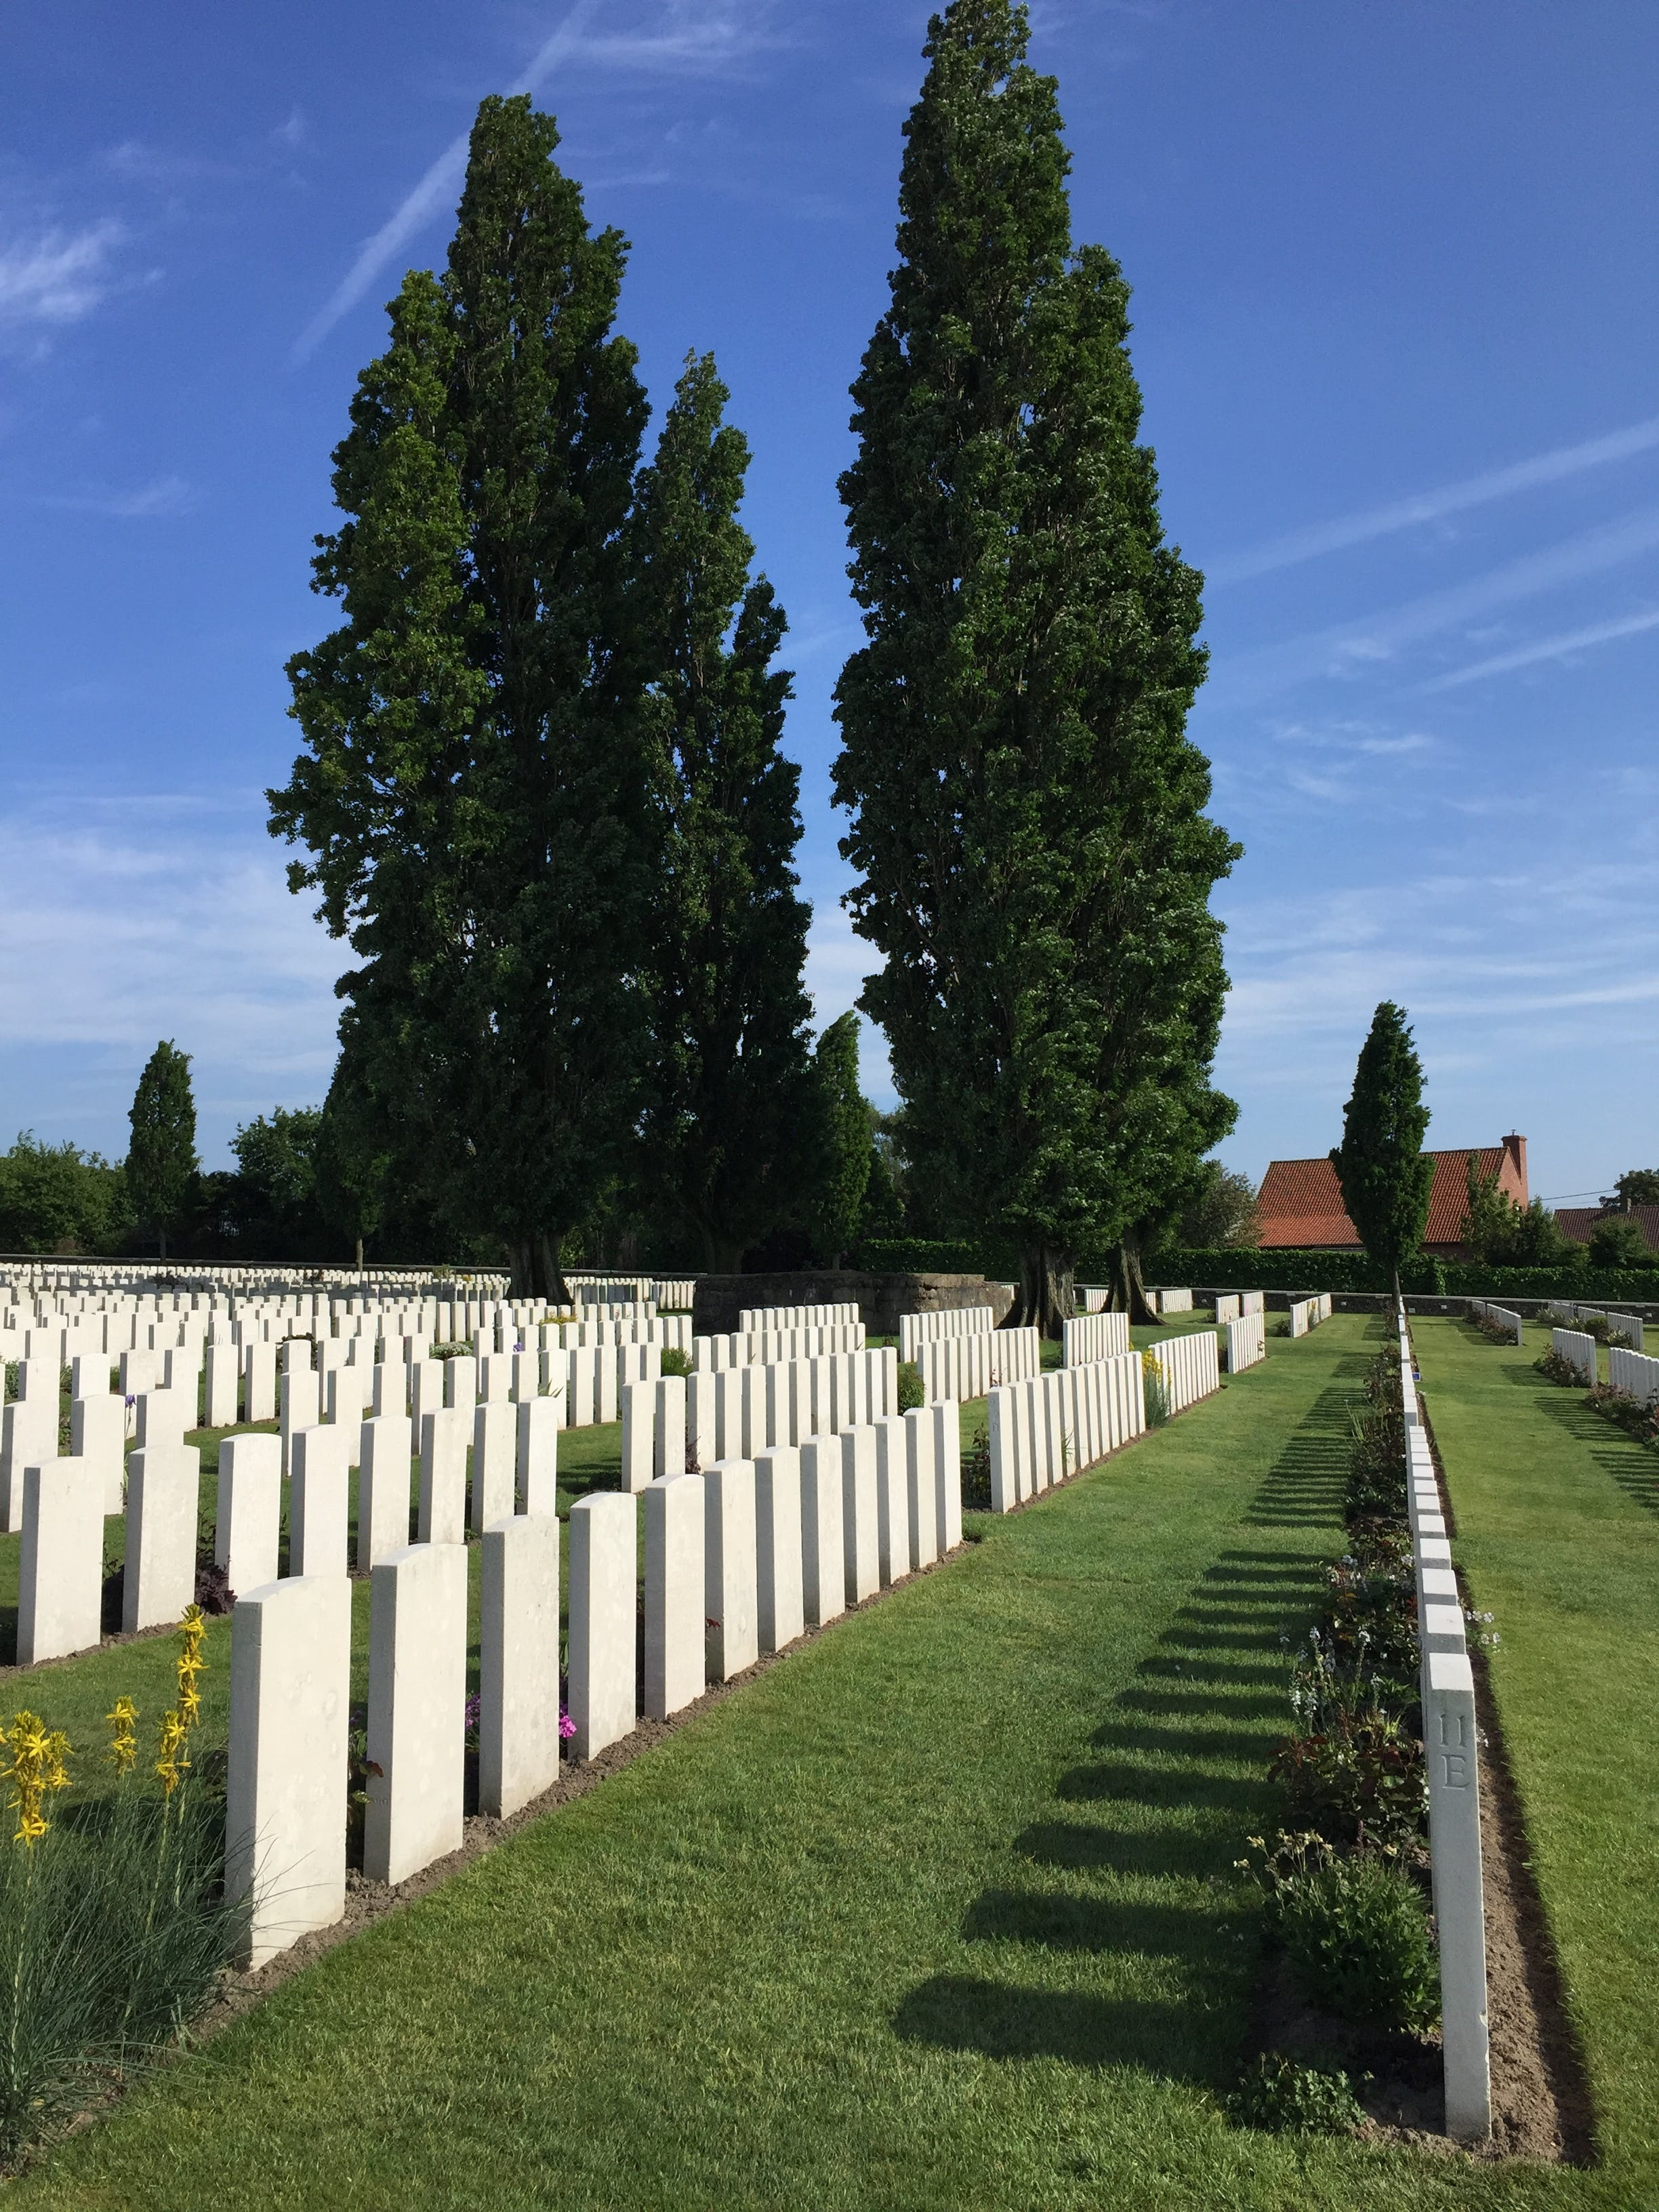 Free stock photo of Belgium, War graves from WW I